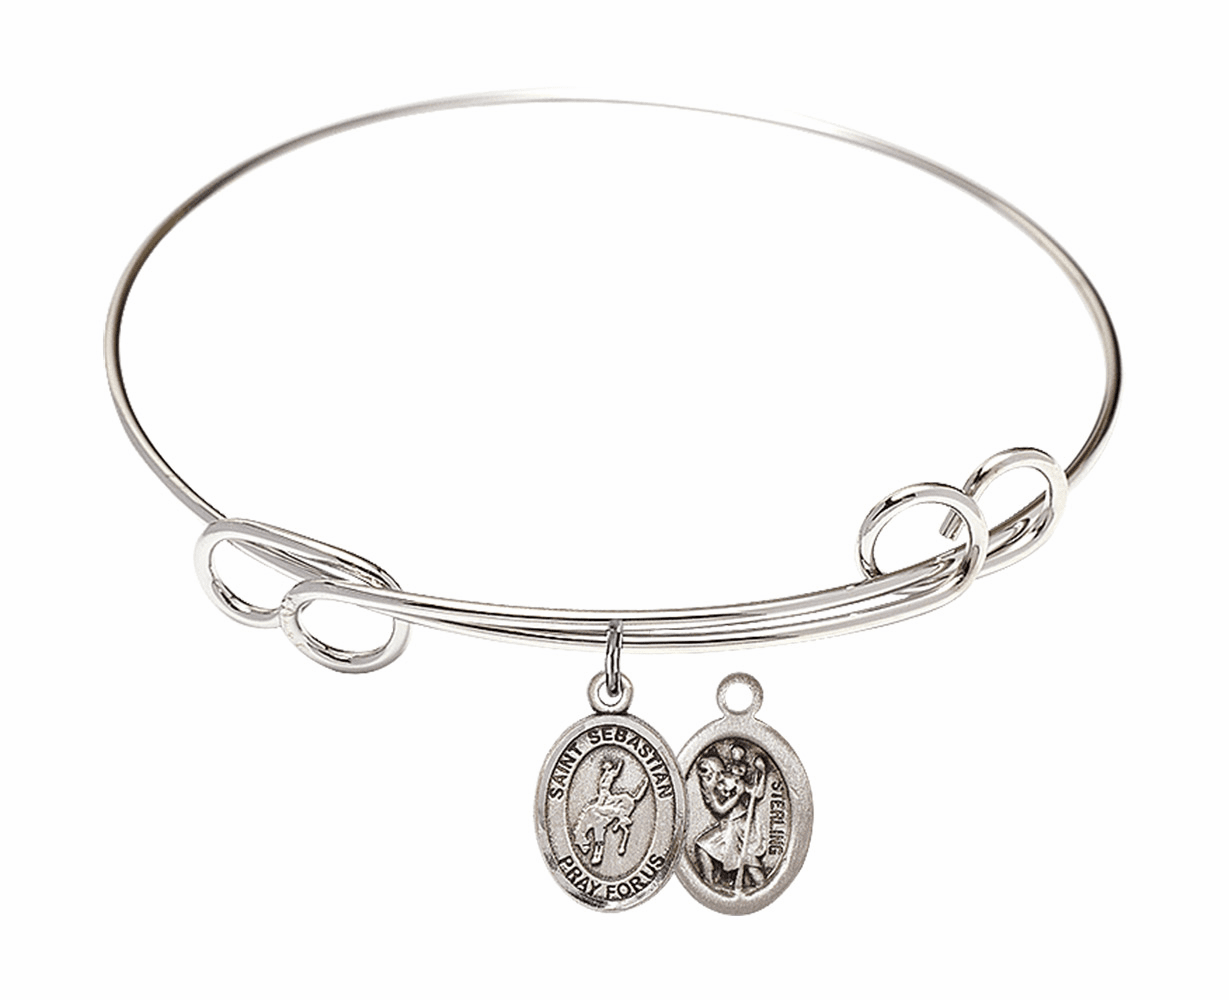 Round Loop St Sebastian Rodeo Bangle Charm Bracelet by Bliss